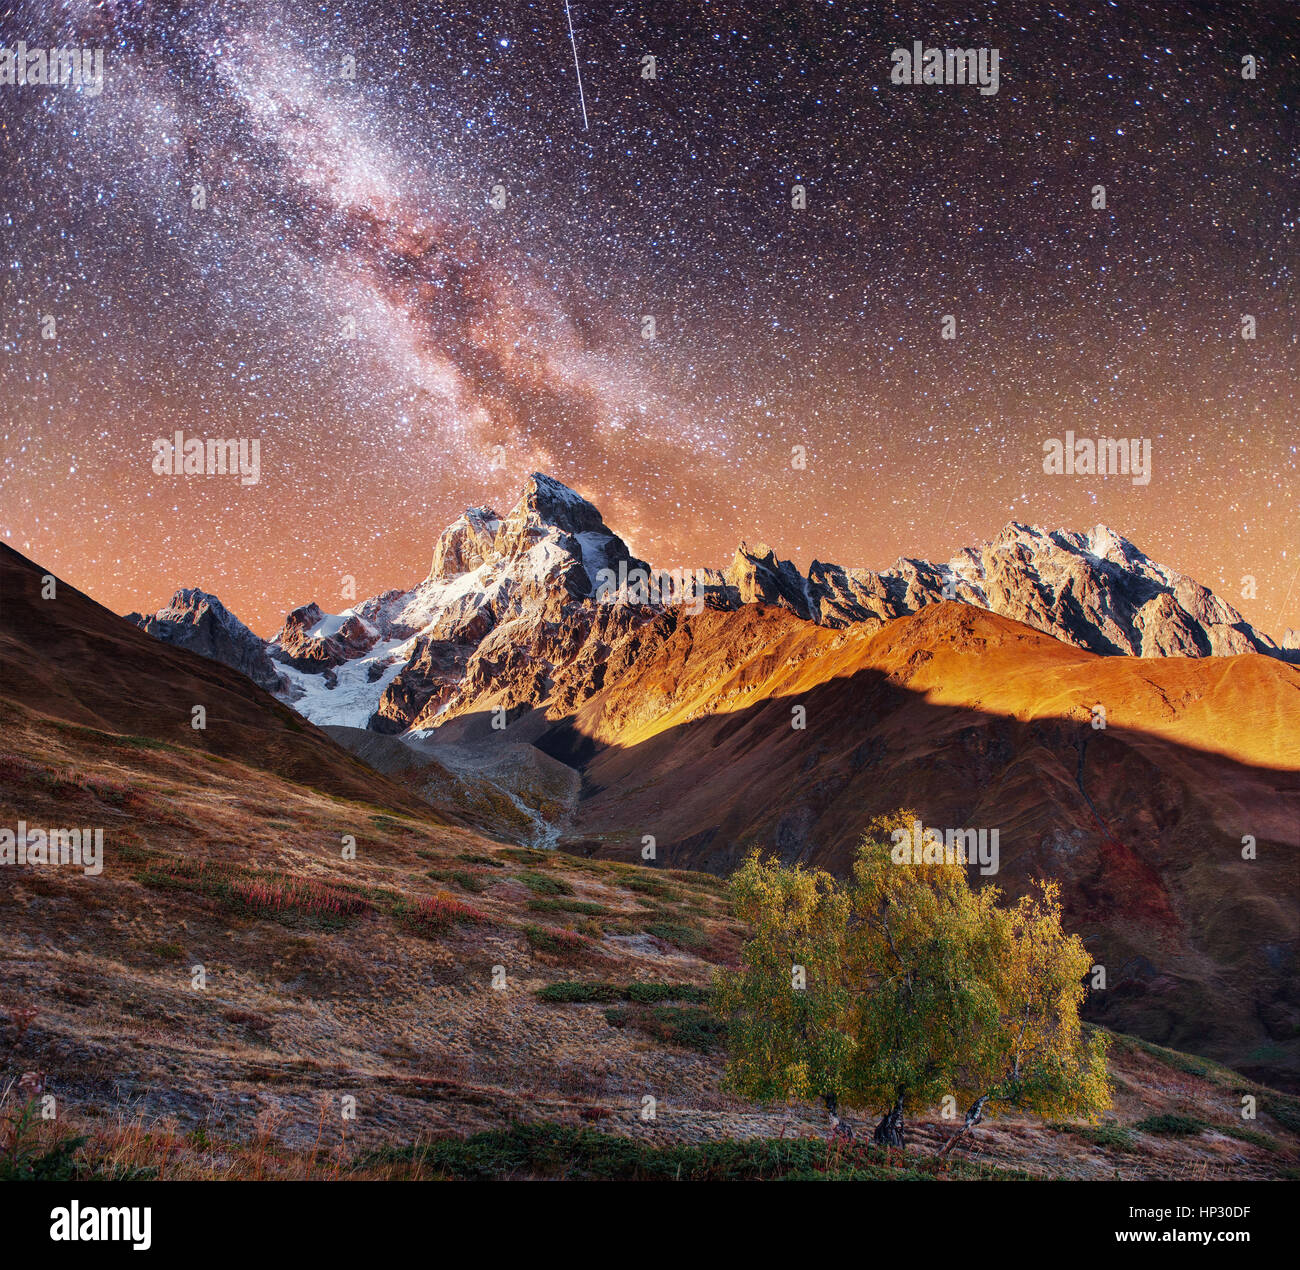 Fantastic collage. Starry sky above snow-capped mountain peaks.  - Stock Image